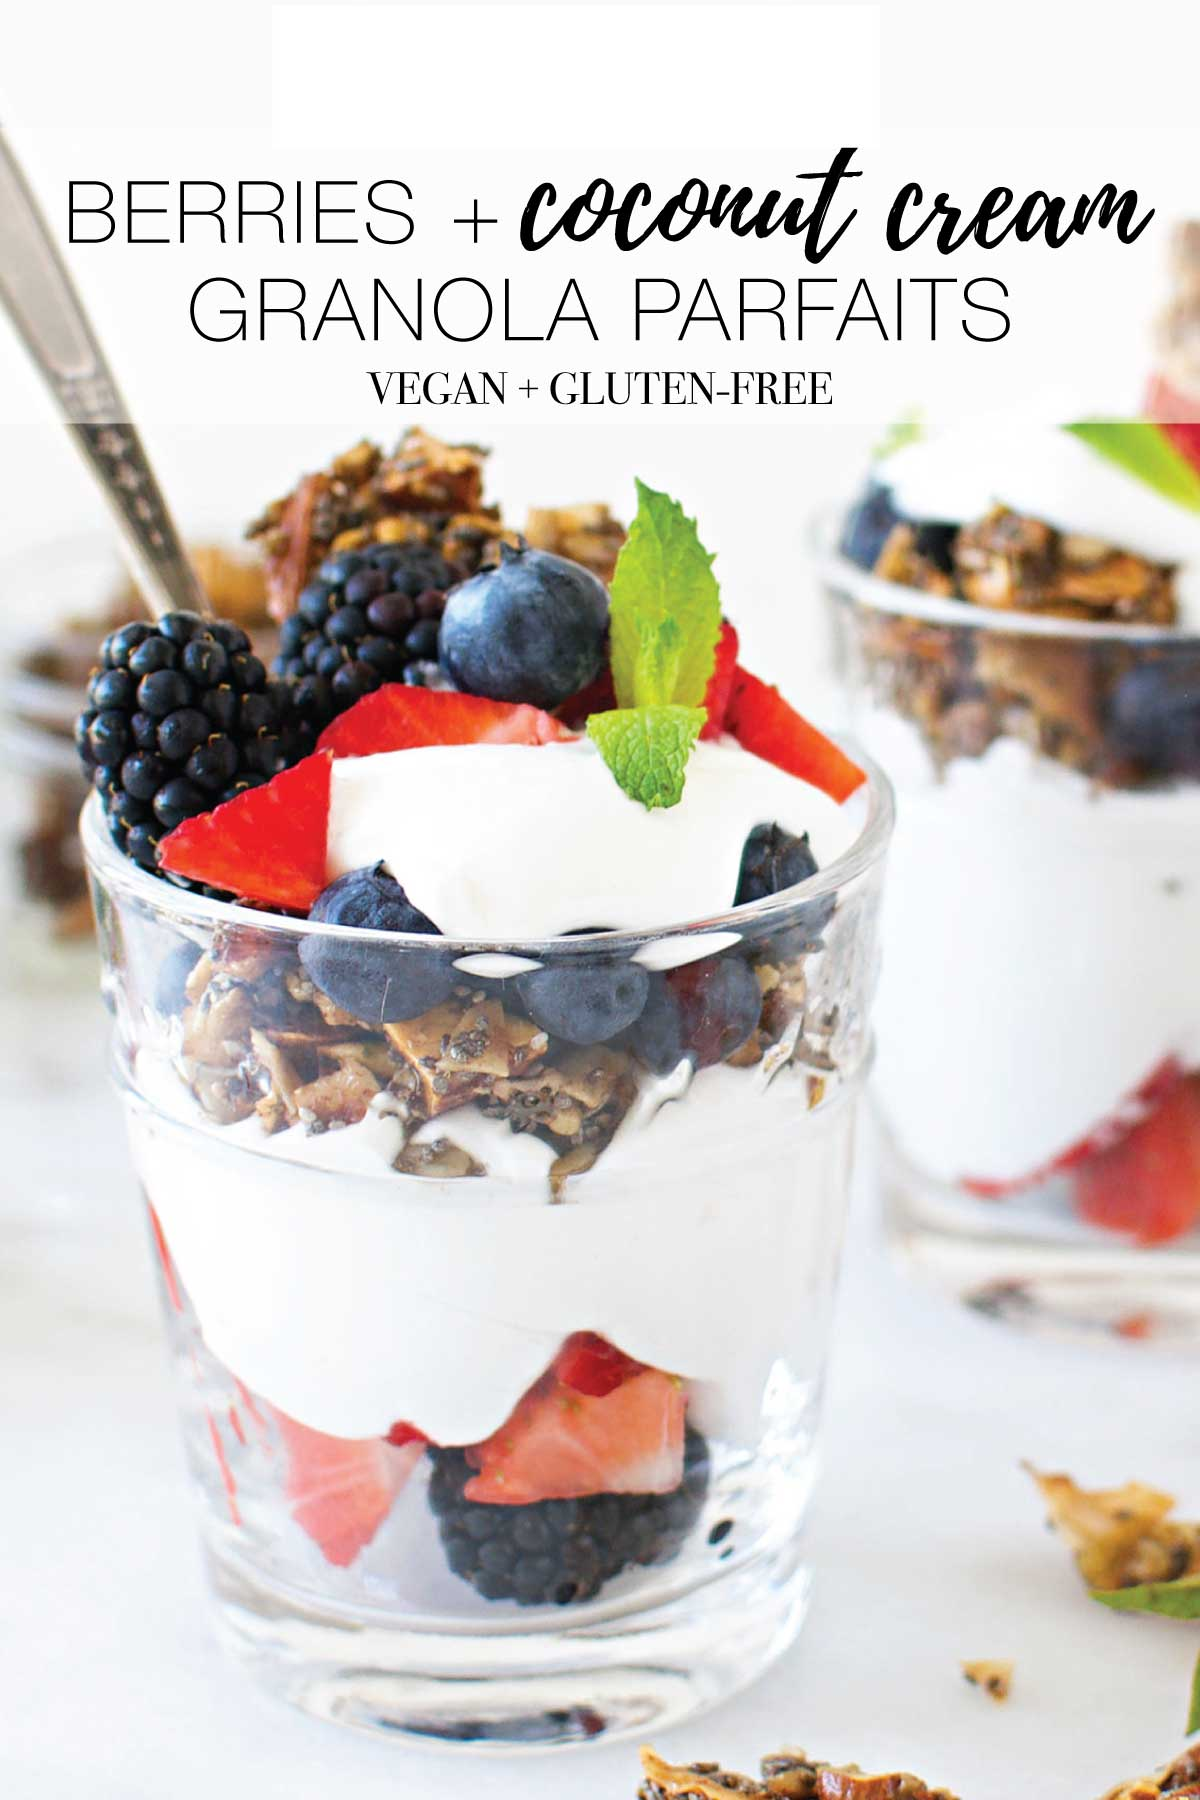 Perfectly timed, The Mom Edit is mixing up the easiest summer dessert: berries + coconut cream granola parfaits. YUM. Vegan & gluten-free. Try it here!